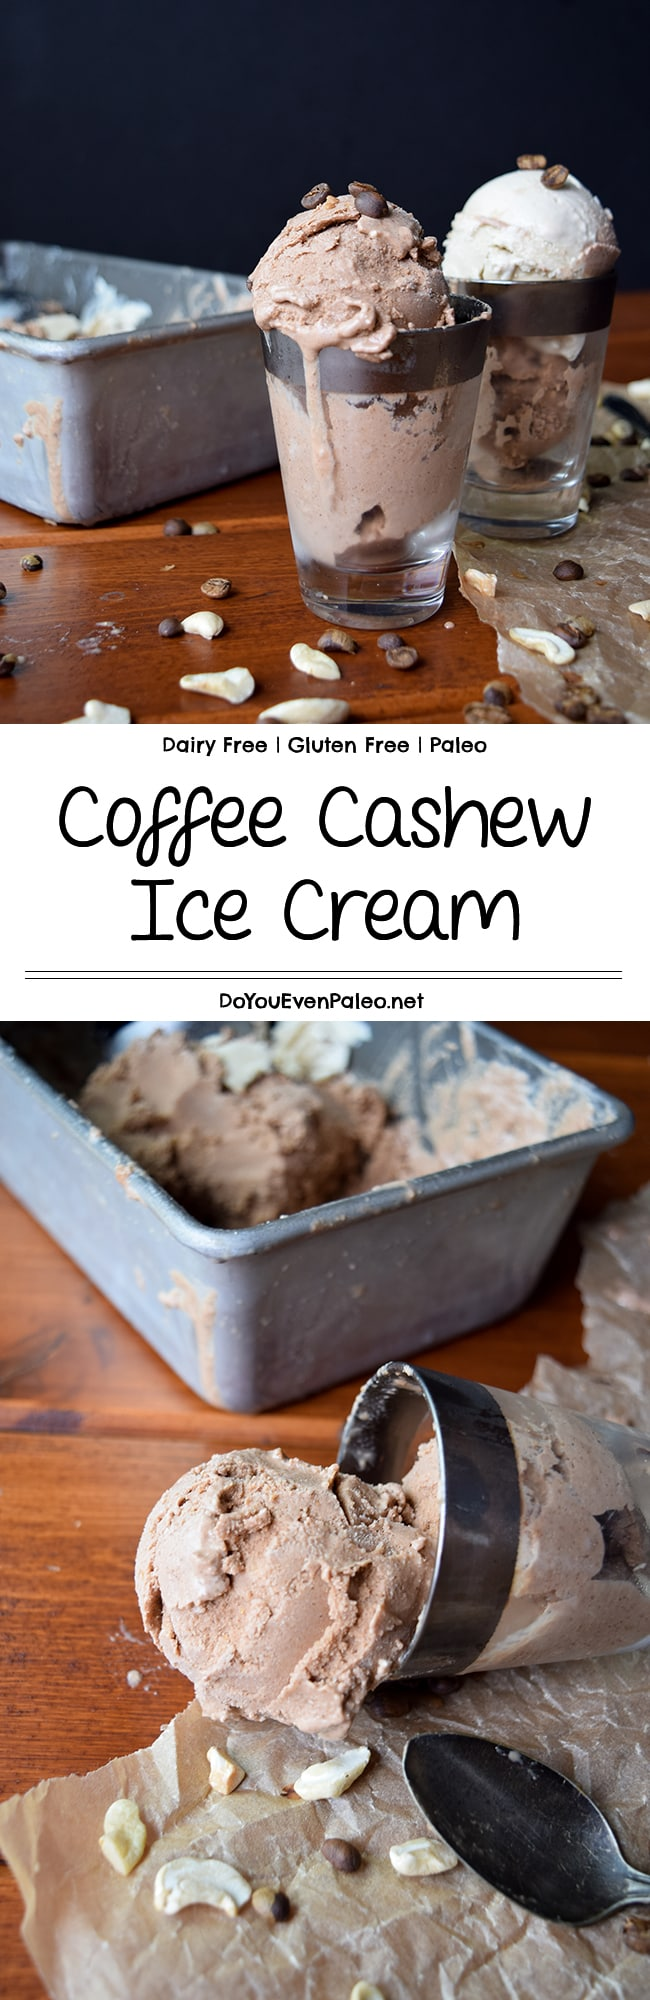 Coffee Cashew Ice Cream - an incredibly thick and creamy dairy free ice cream recipe made with cashews and cold brew coffee - a match made in heaven! Bonus: this healthy recipe is gluten free and paleo! | DoYouEvenPaleo.net #paleo #glutenfree